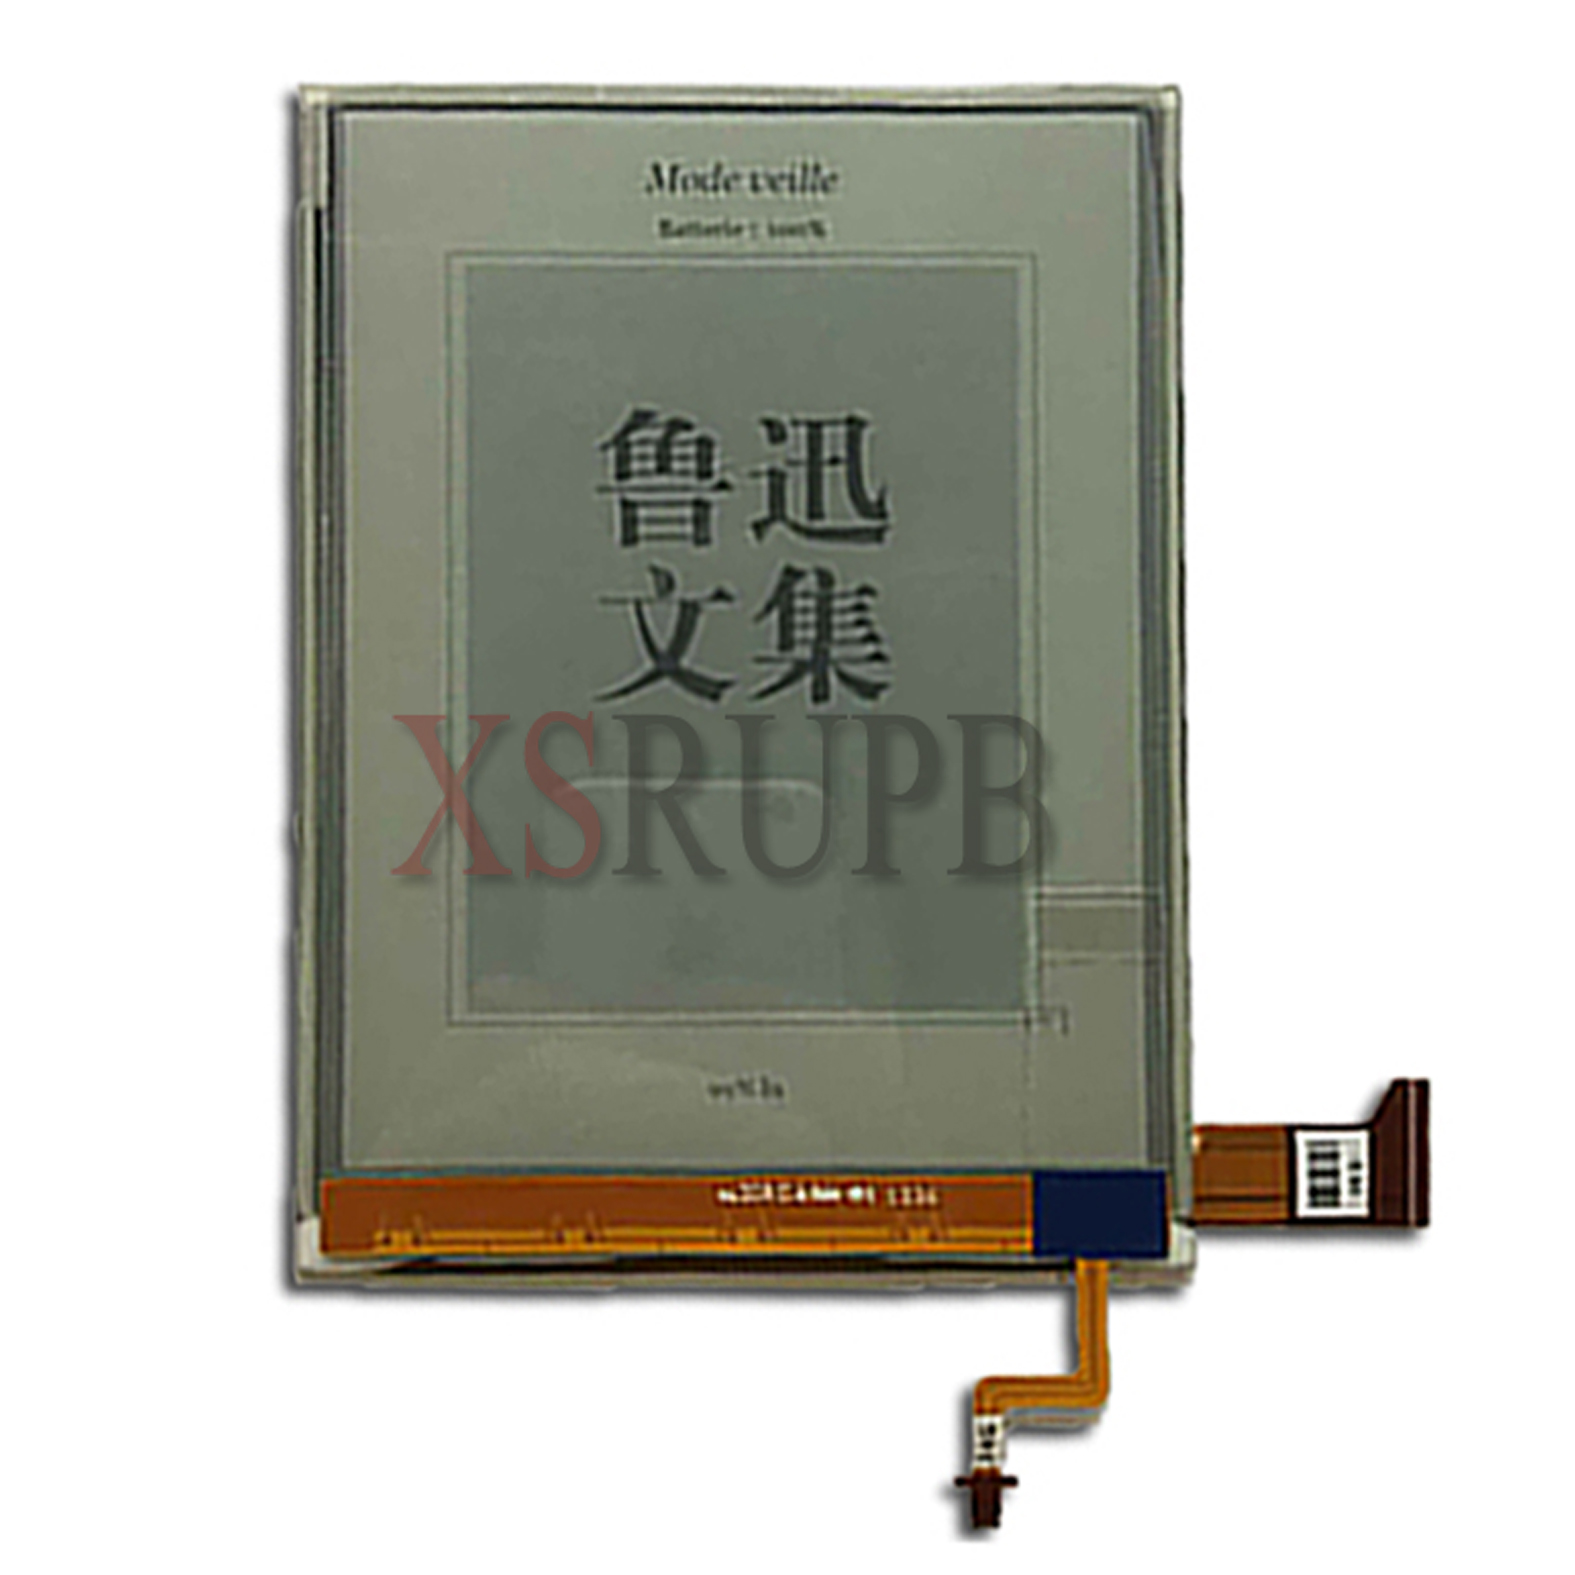 NEW Original 6inch 758*1024 E-ink Pearl HD Ebook Reader LCD Screen Display for ONYX BOOX C67SML E-book Reader Repair replacement original 6 inch touch screen lcd display for onyx boox c63l onyx boox c63ml magellan e book free shipping